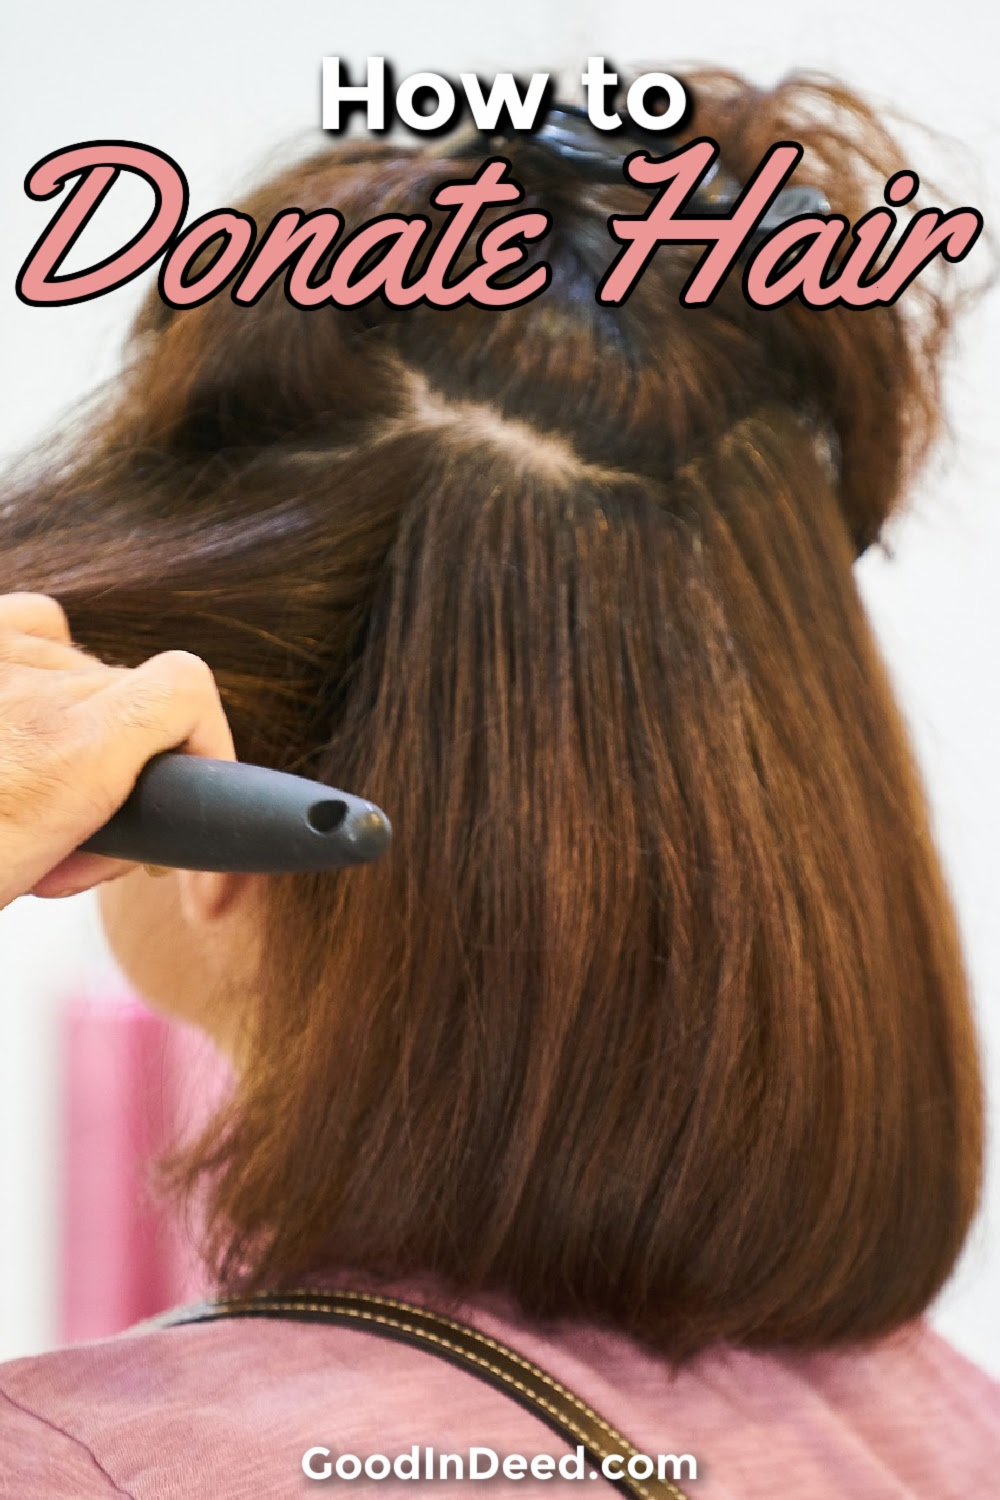 Finding ways to donate hair can be a small thing you do next time you get a haircut that would change everything for someone in need.